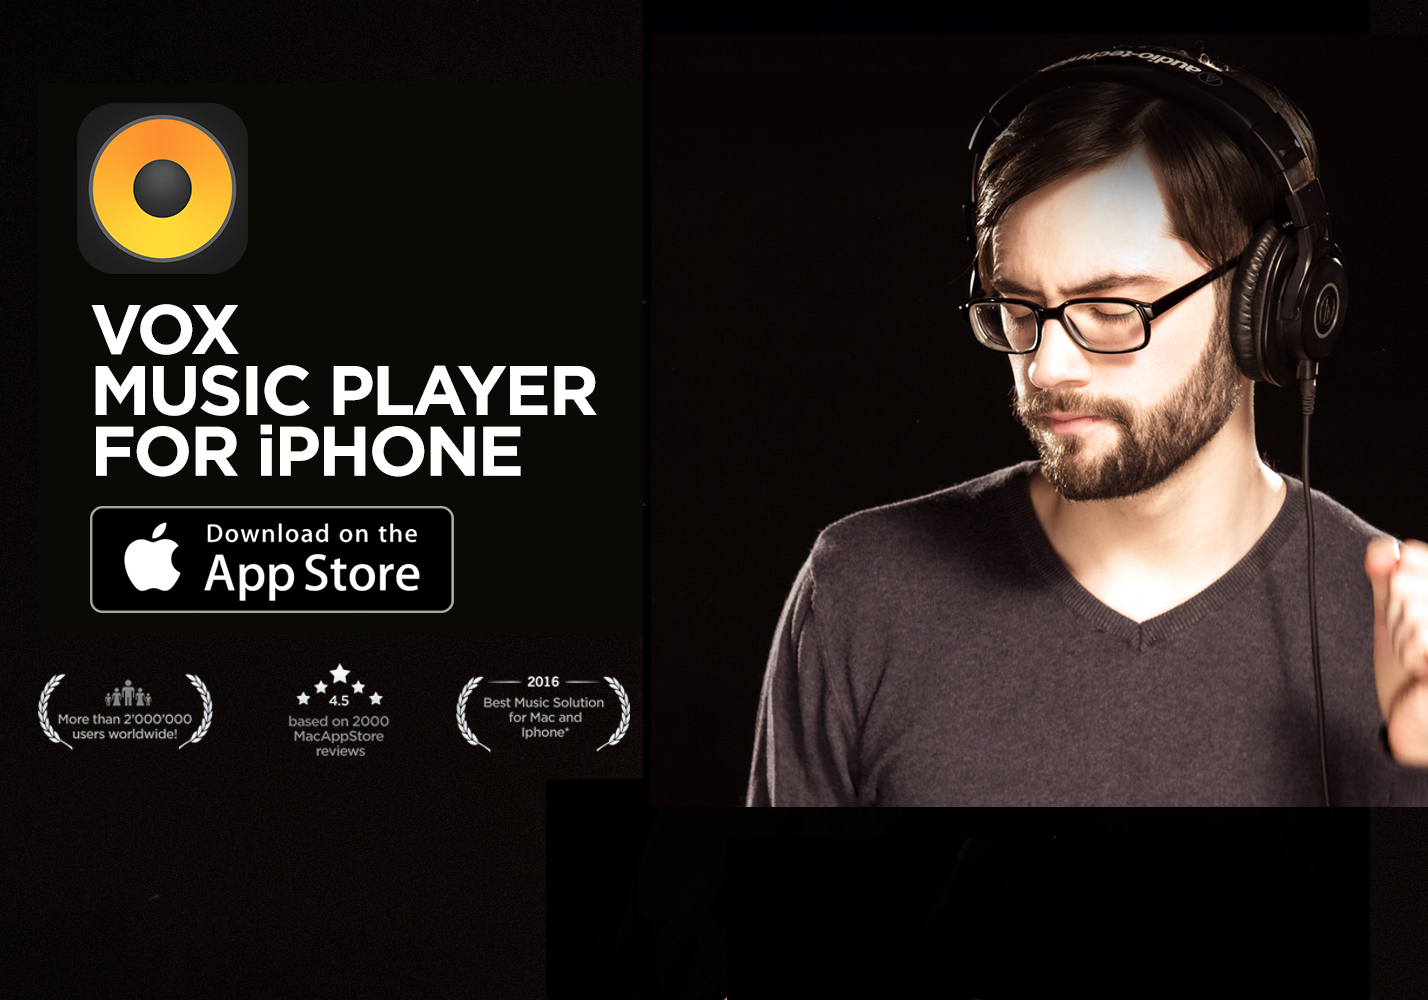 VOX High Definition Player for Mac logo, Download on the App Store button and a man with headphones enjoying music.